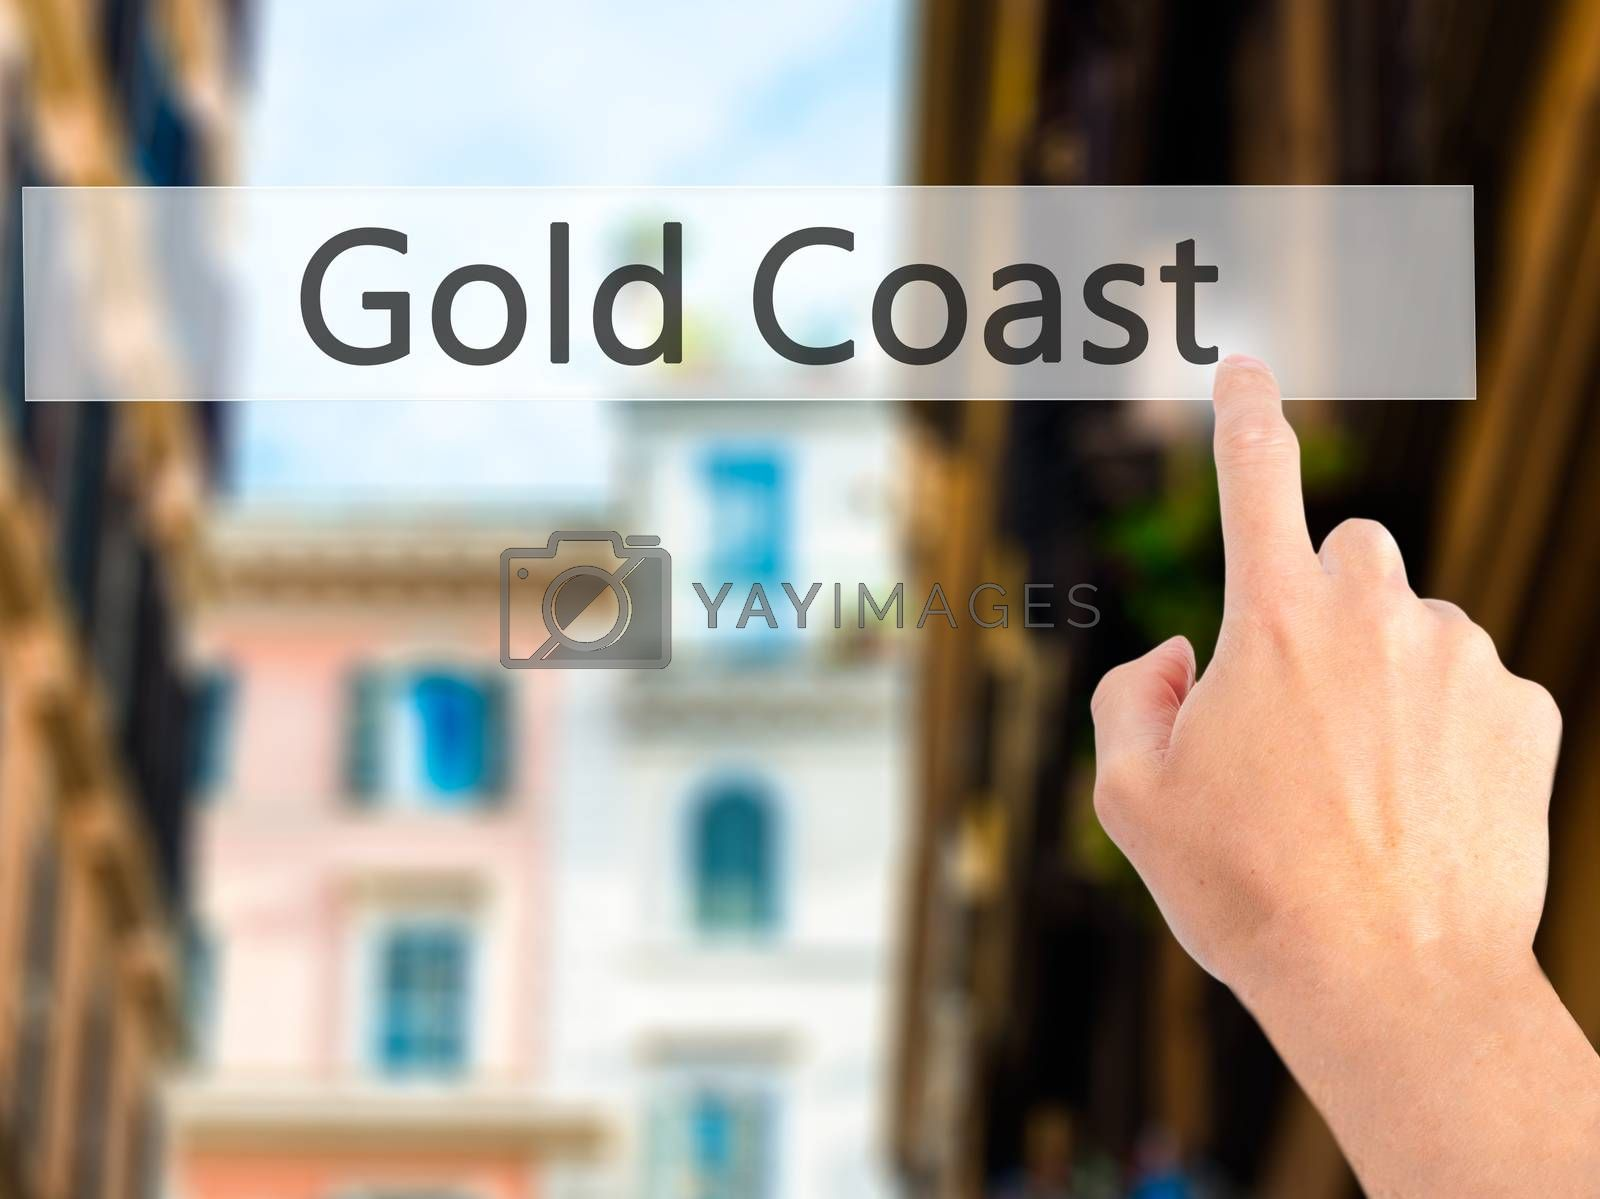 Gold Coast  - Hand pressing a button on blurred background conce by netsay.net